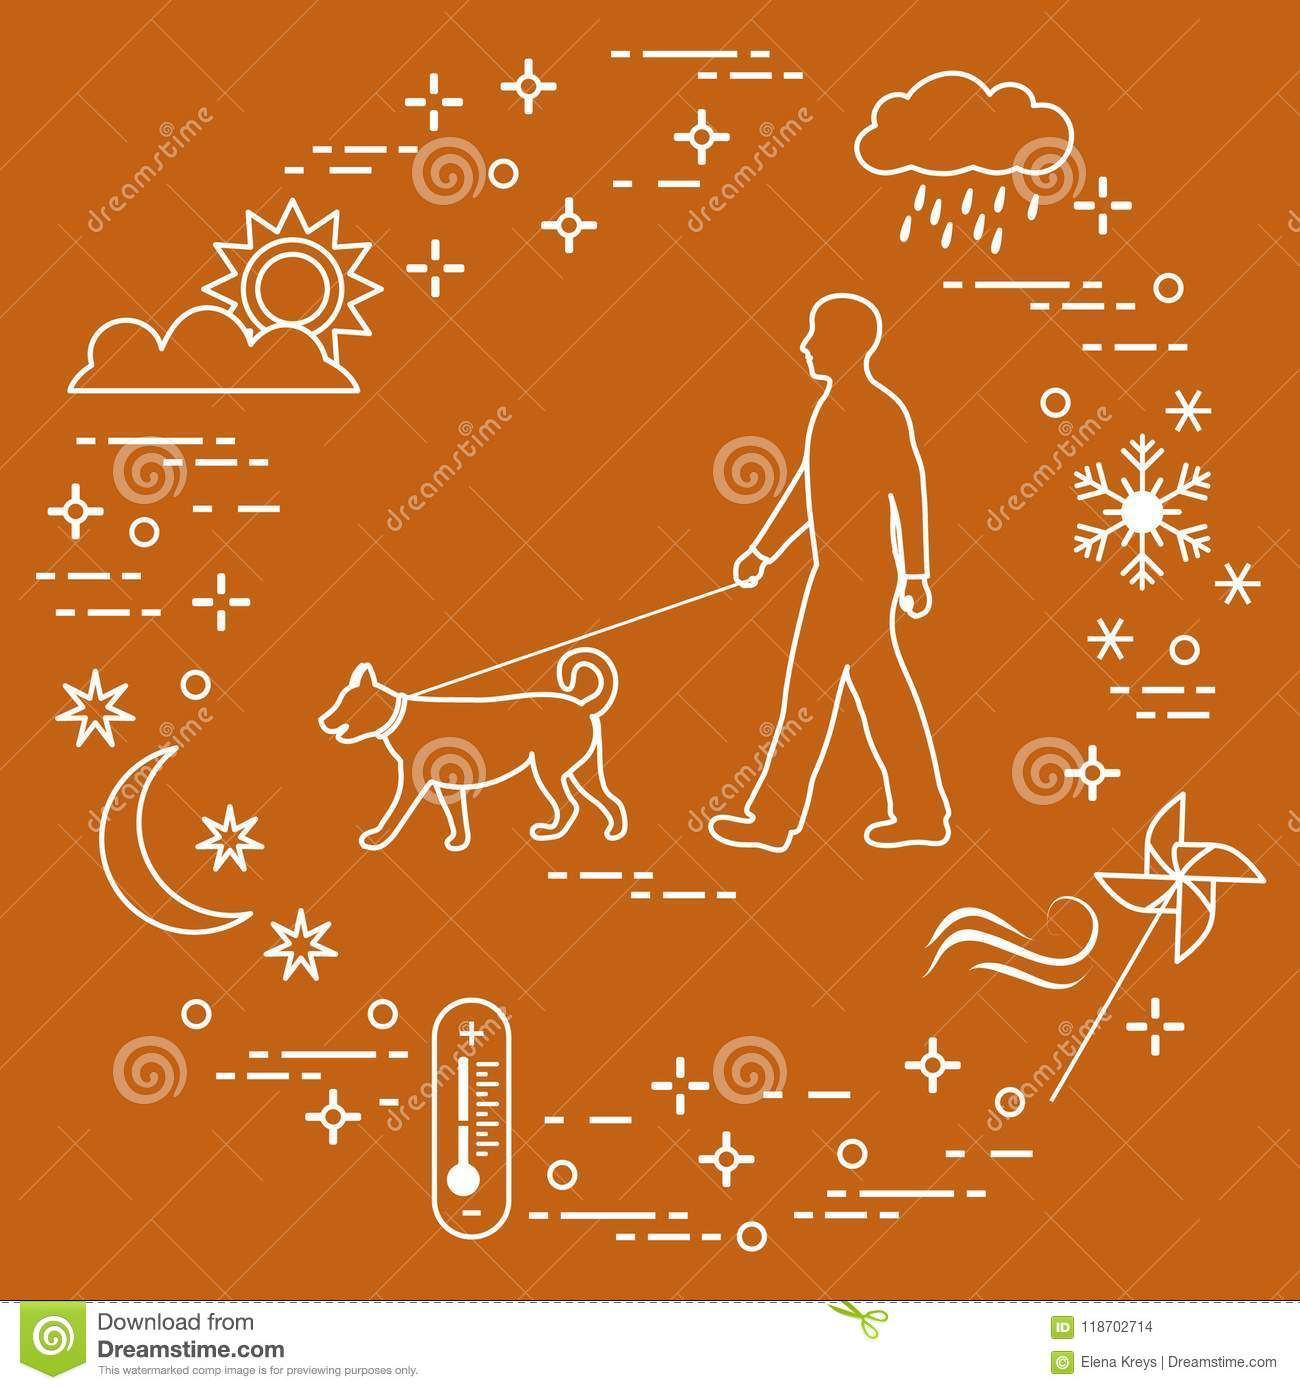 Man Walking A Dog On A Leash In Any Weather Stock Vector